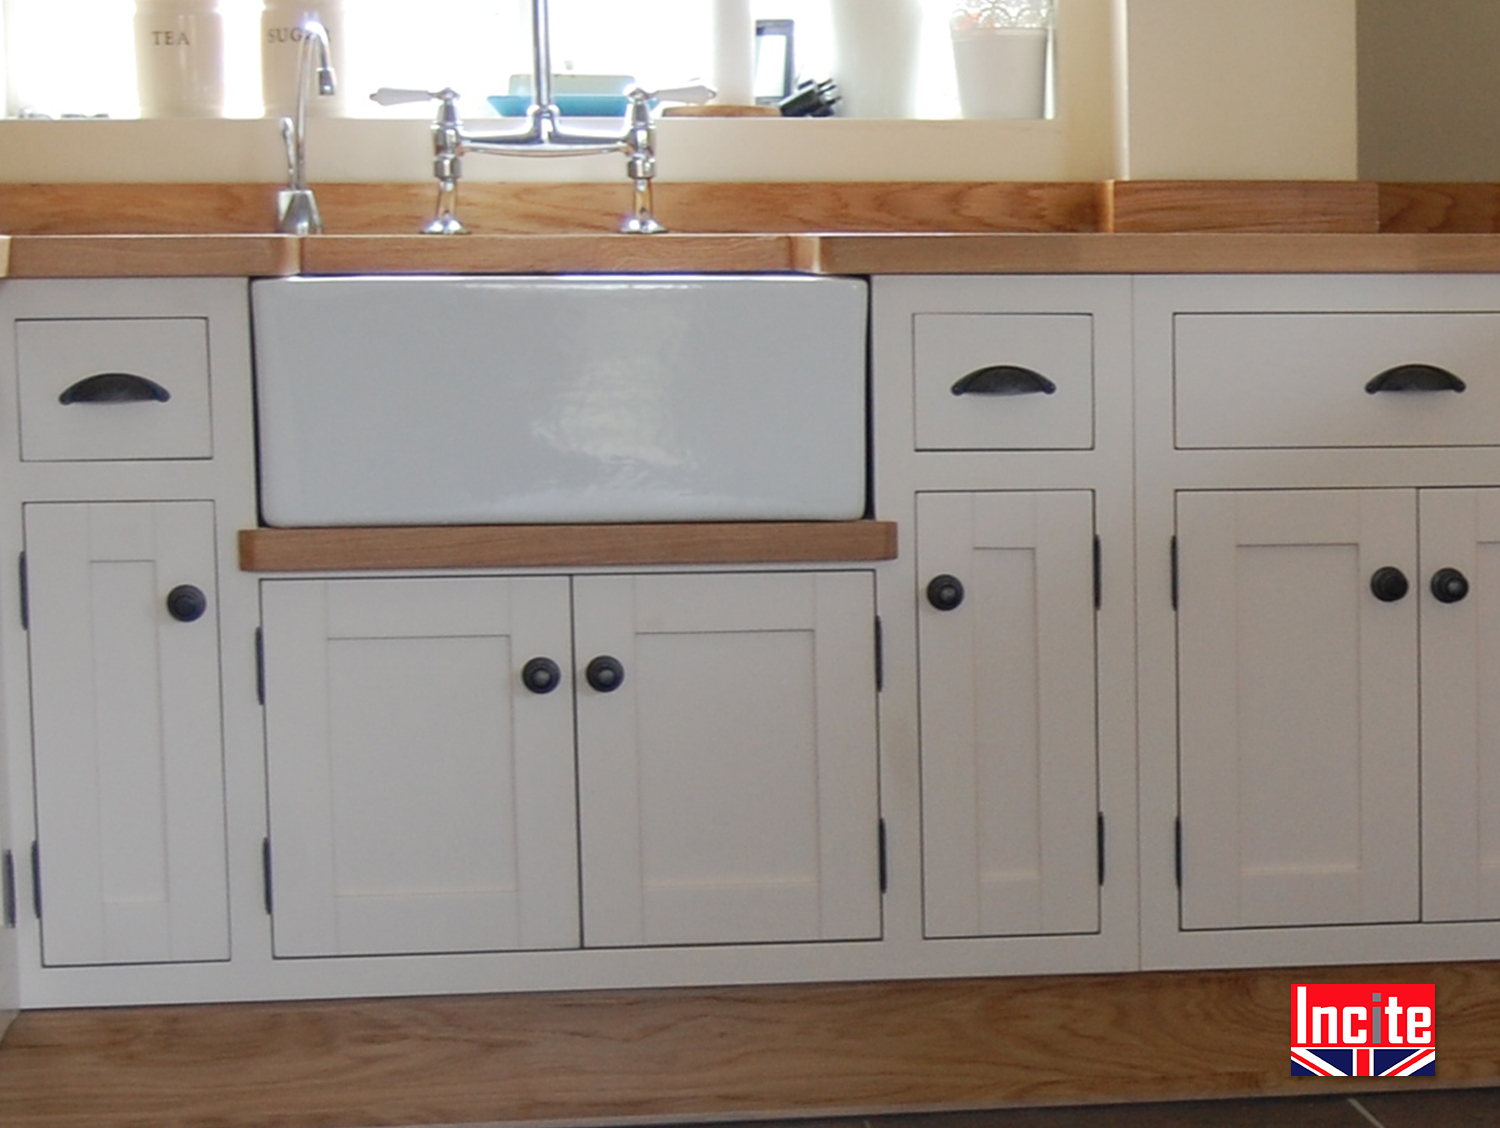 Bespoke handmade painted shades of grey and oak kitchen for Bespoke kitchen cabinets